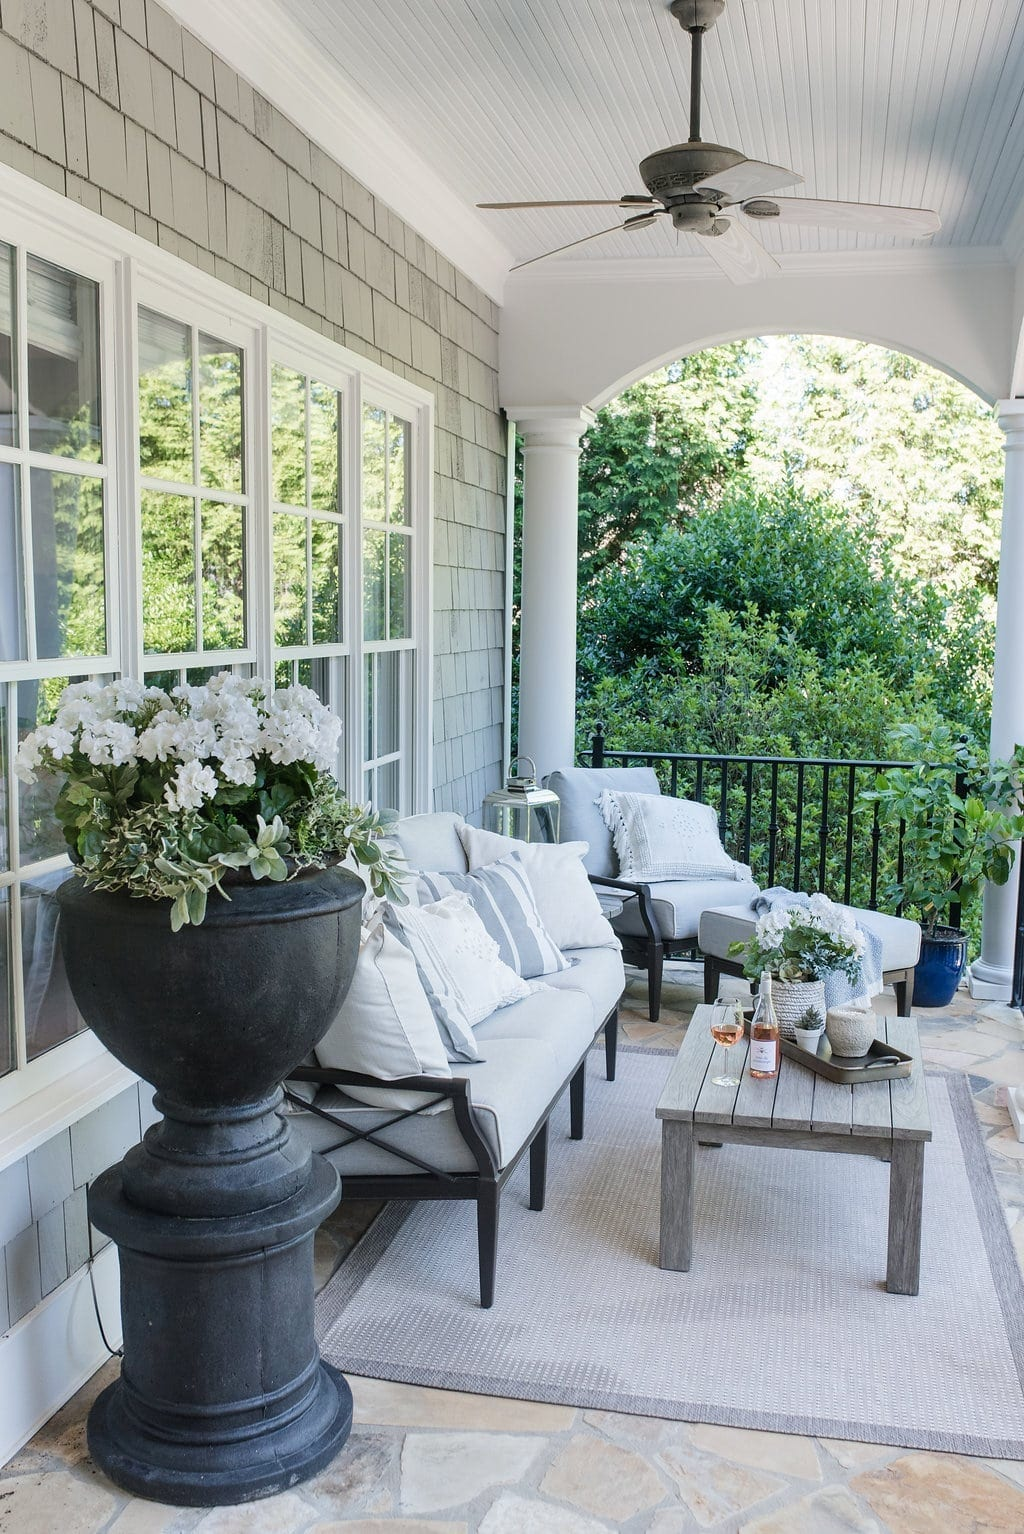 Gray and white outdoor furniture. Teak table and cushioned outdoor furniture.